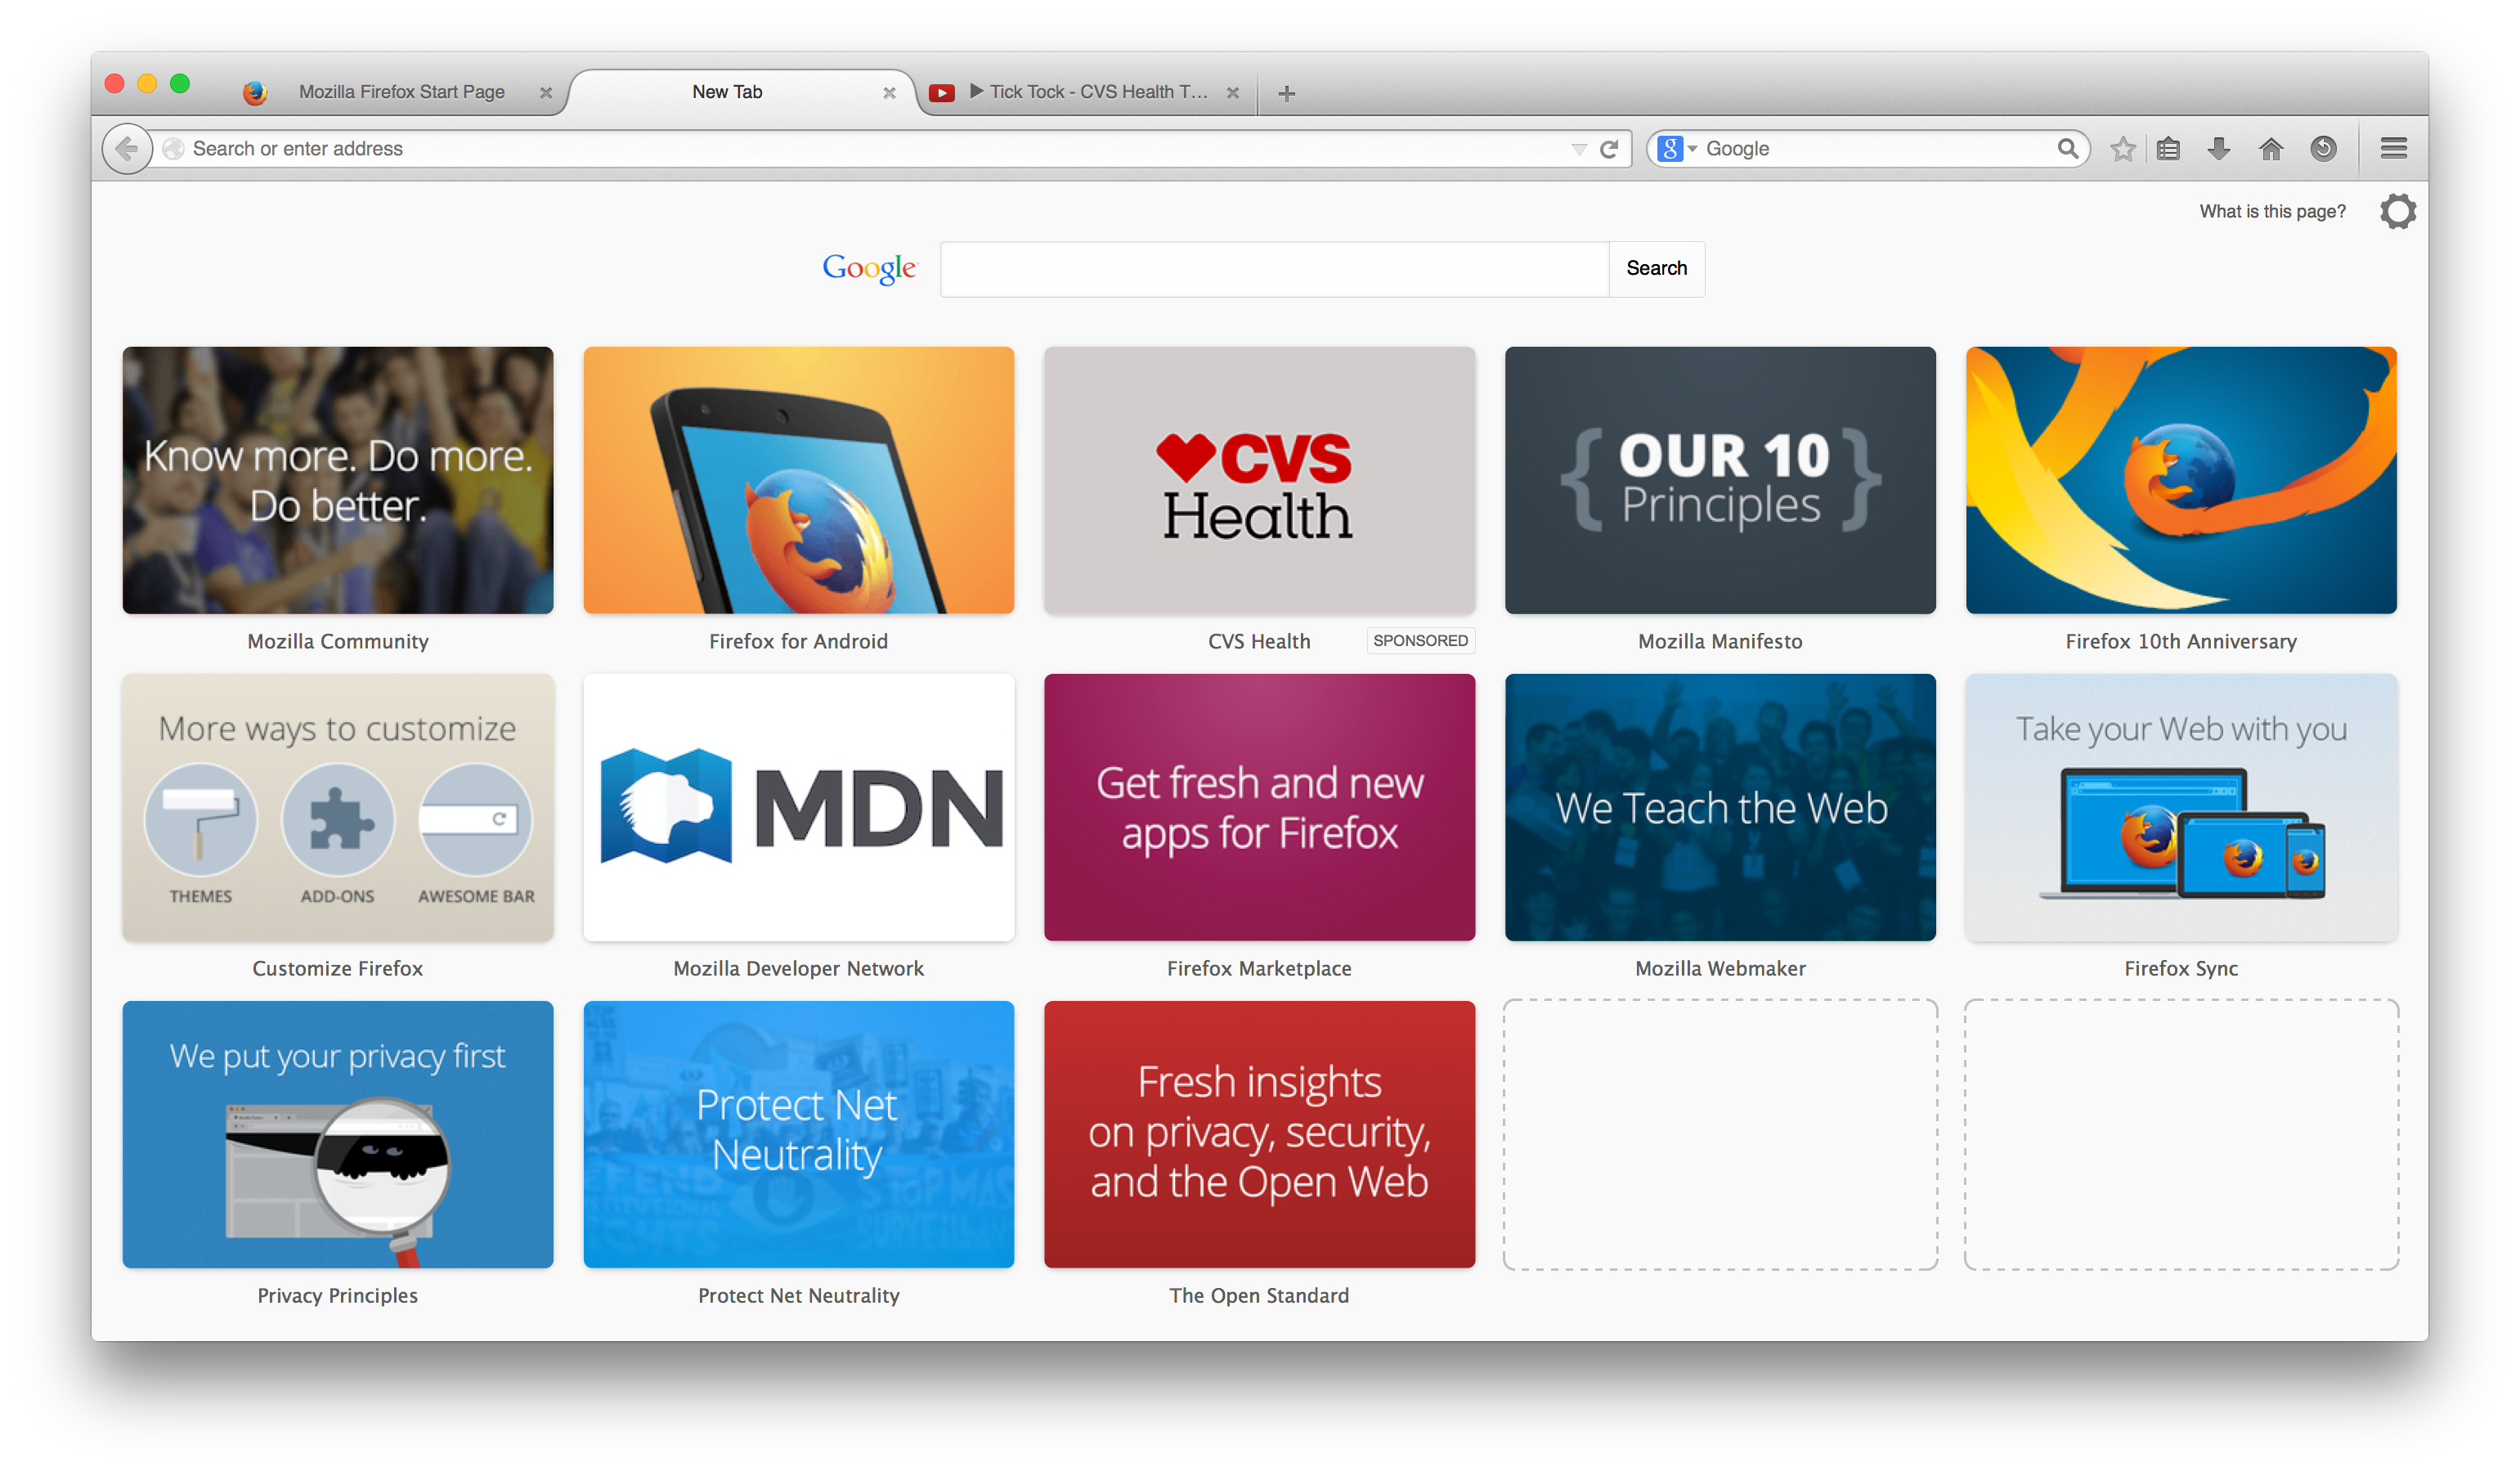 Advancing Content | Official blog for Mozilla's Content